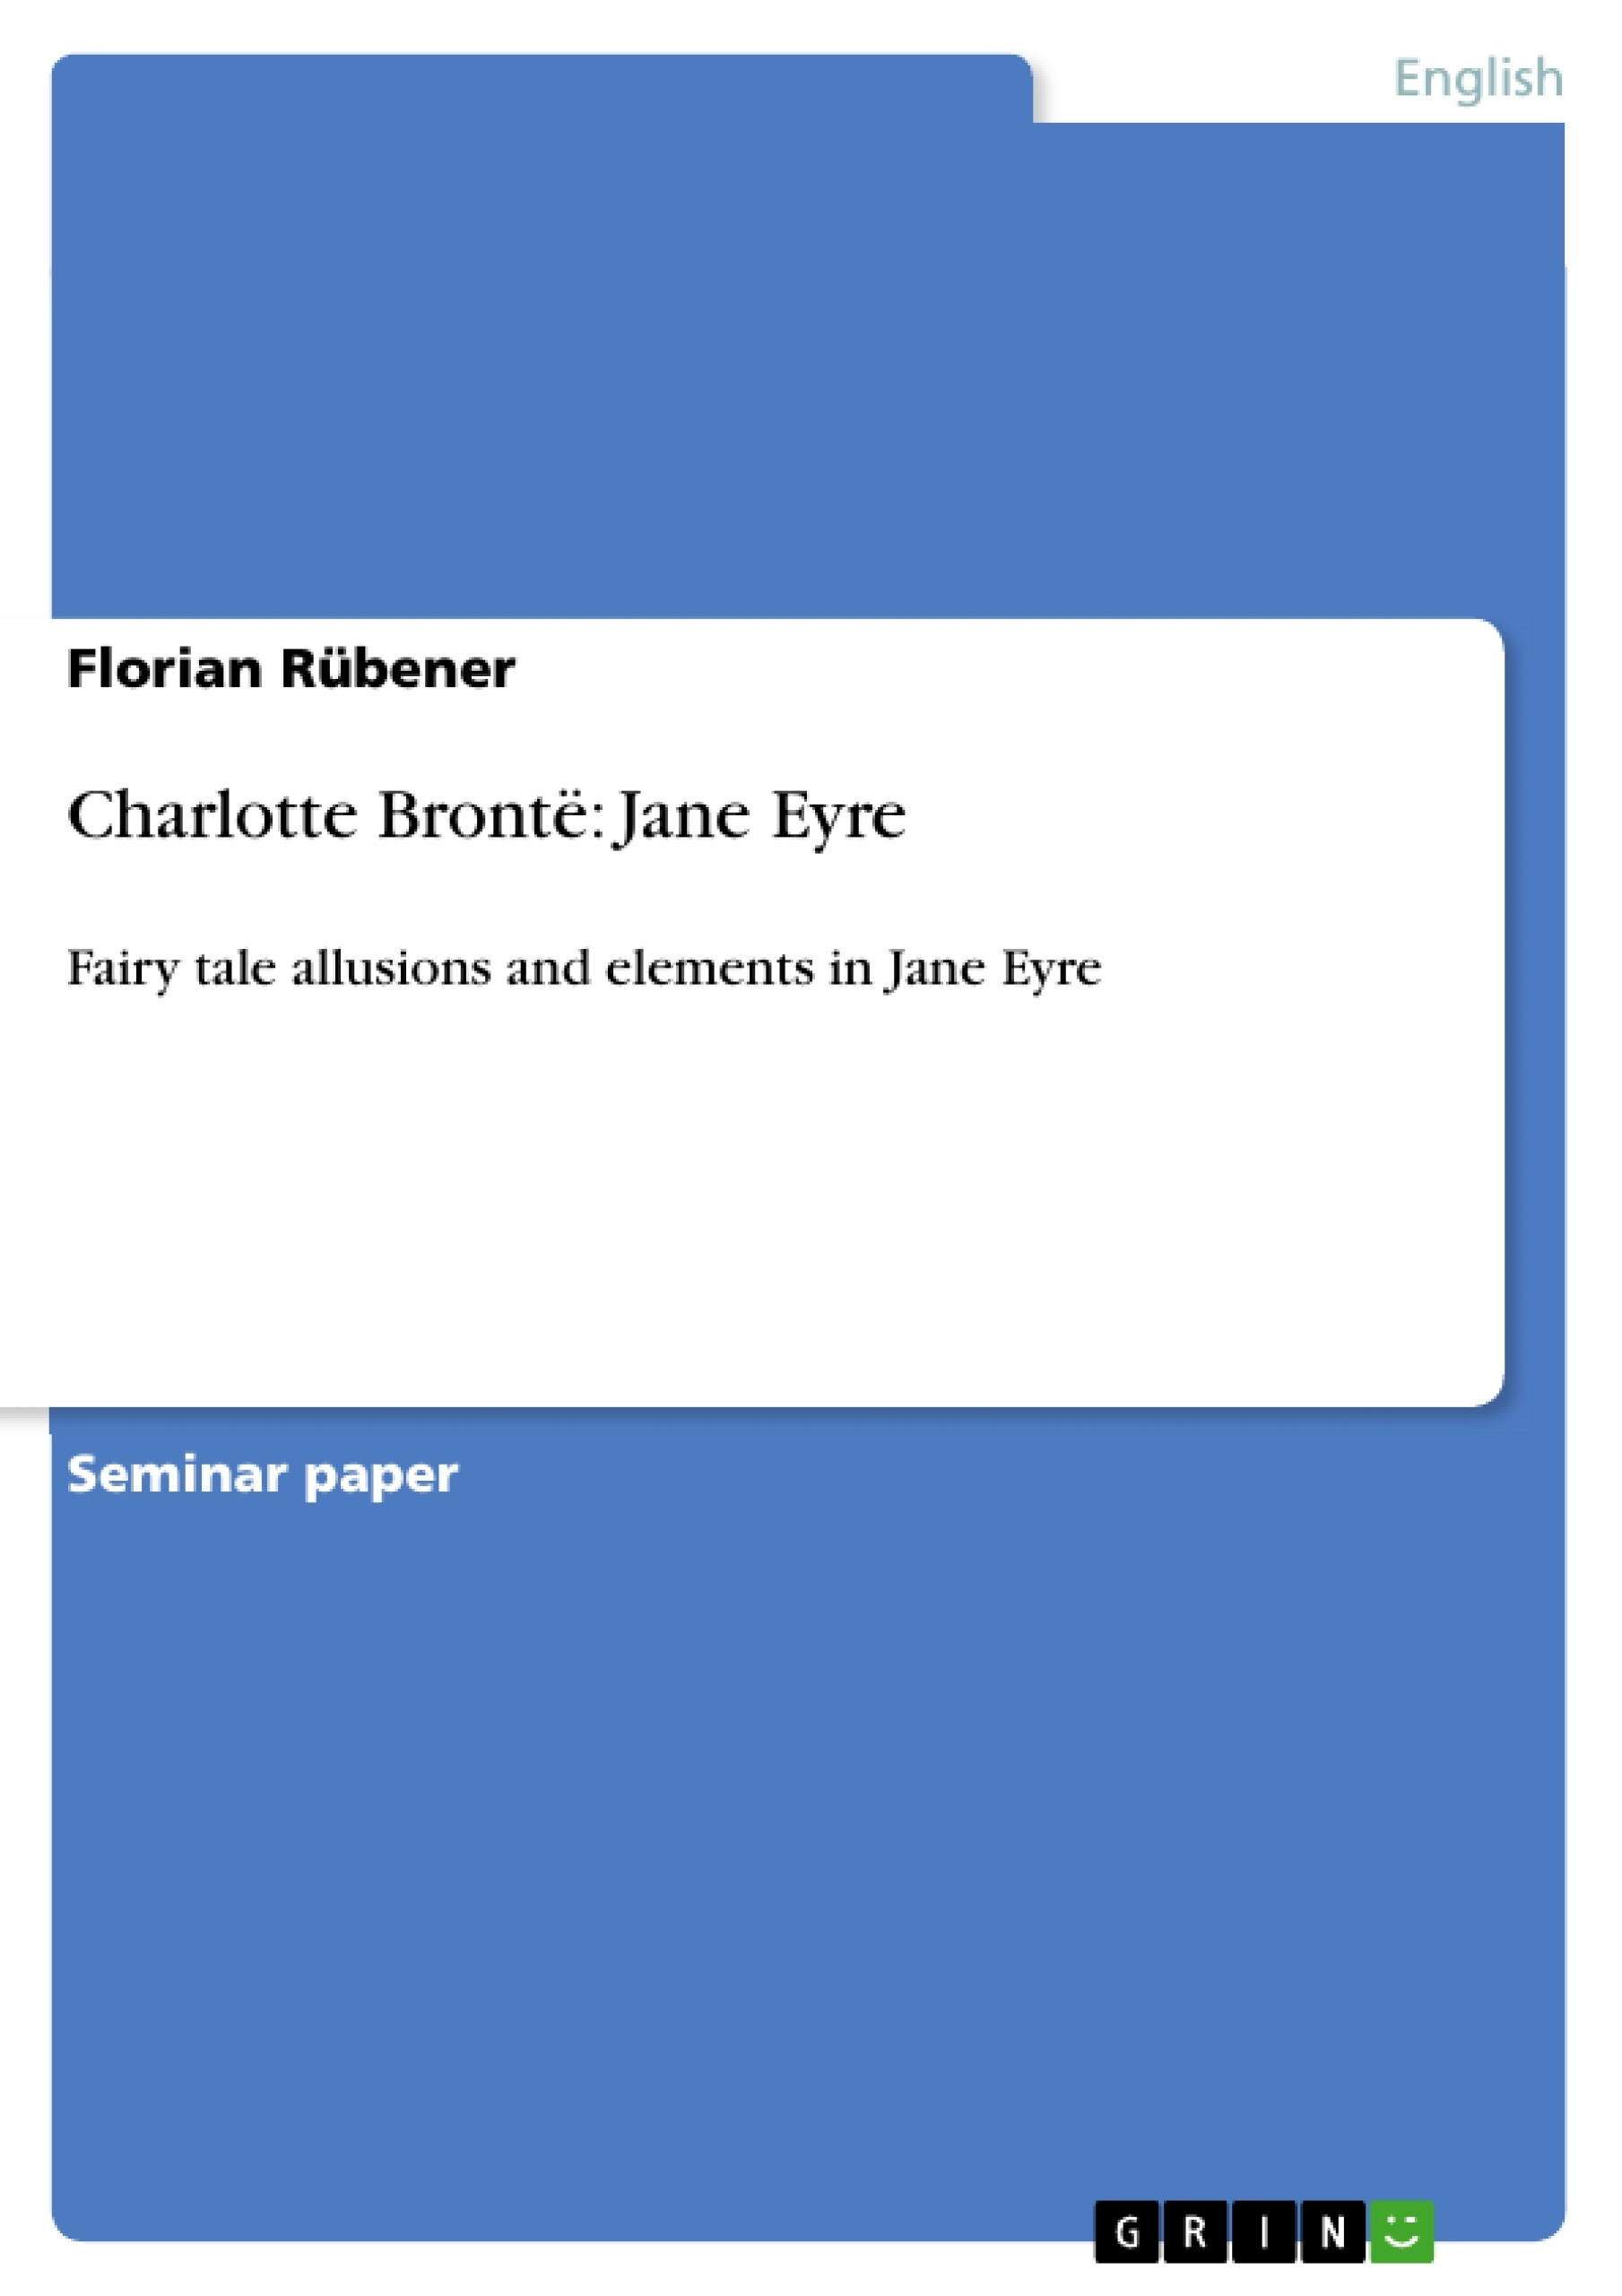 charlotte bront euml jane eyre publish your master s thesis charlotte bronteuml jane eyre publish your master s thesis bachelor s thesis essay or term paper